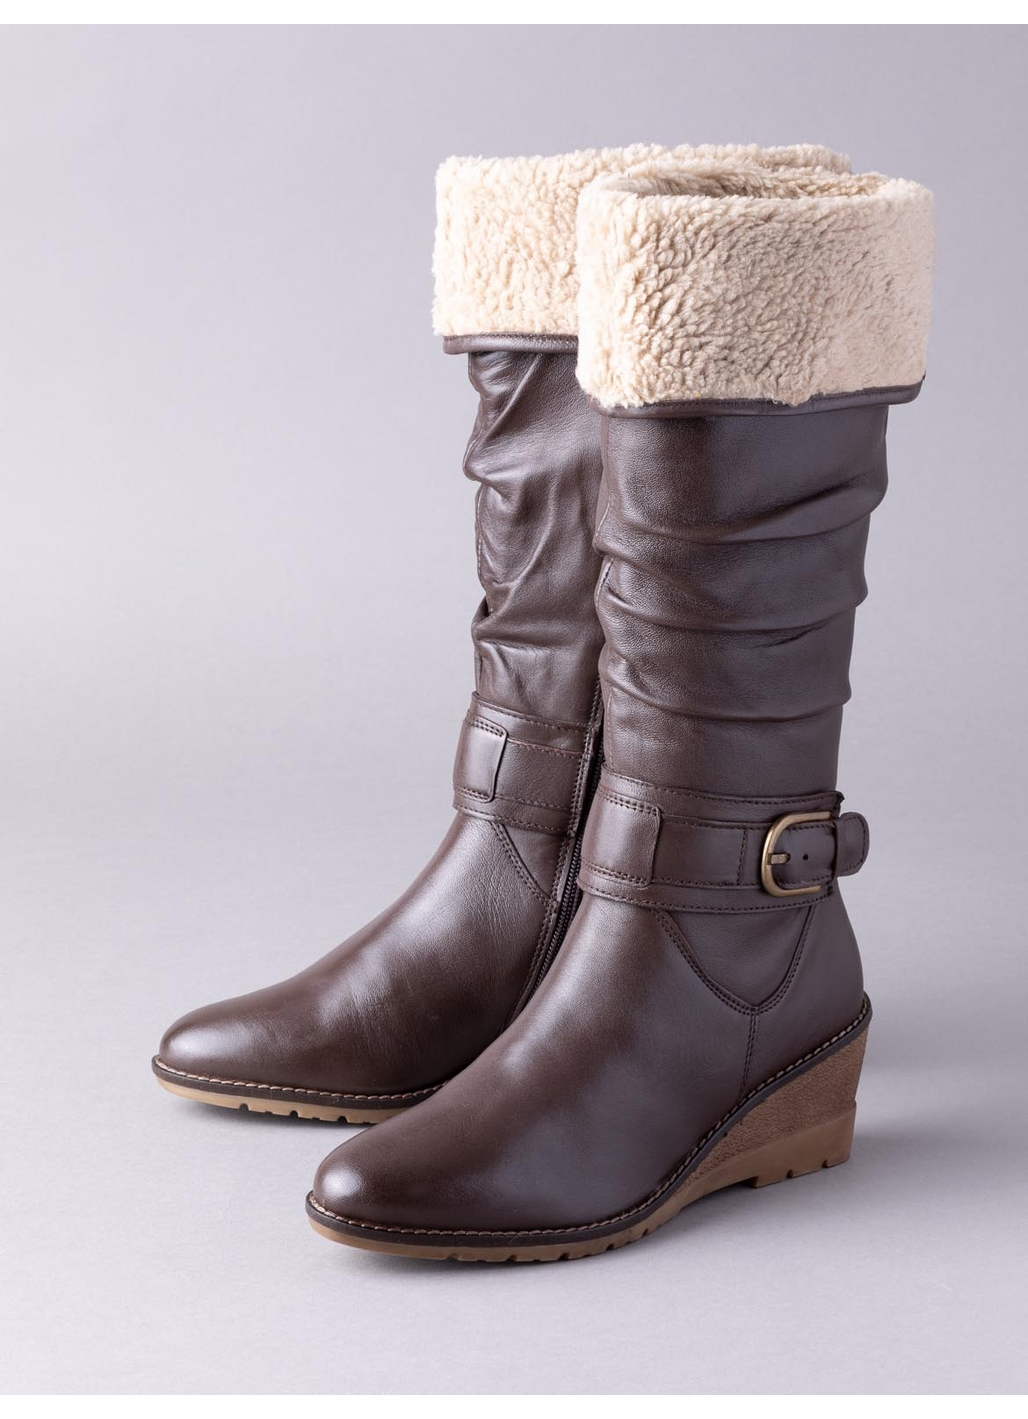 Lotus Dandy Knee High Leather Boots in Brown